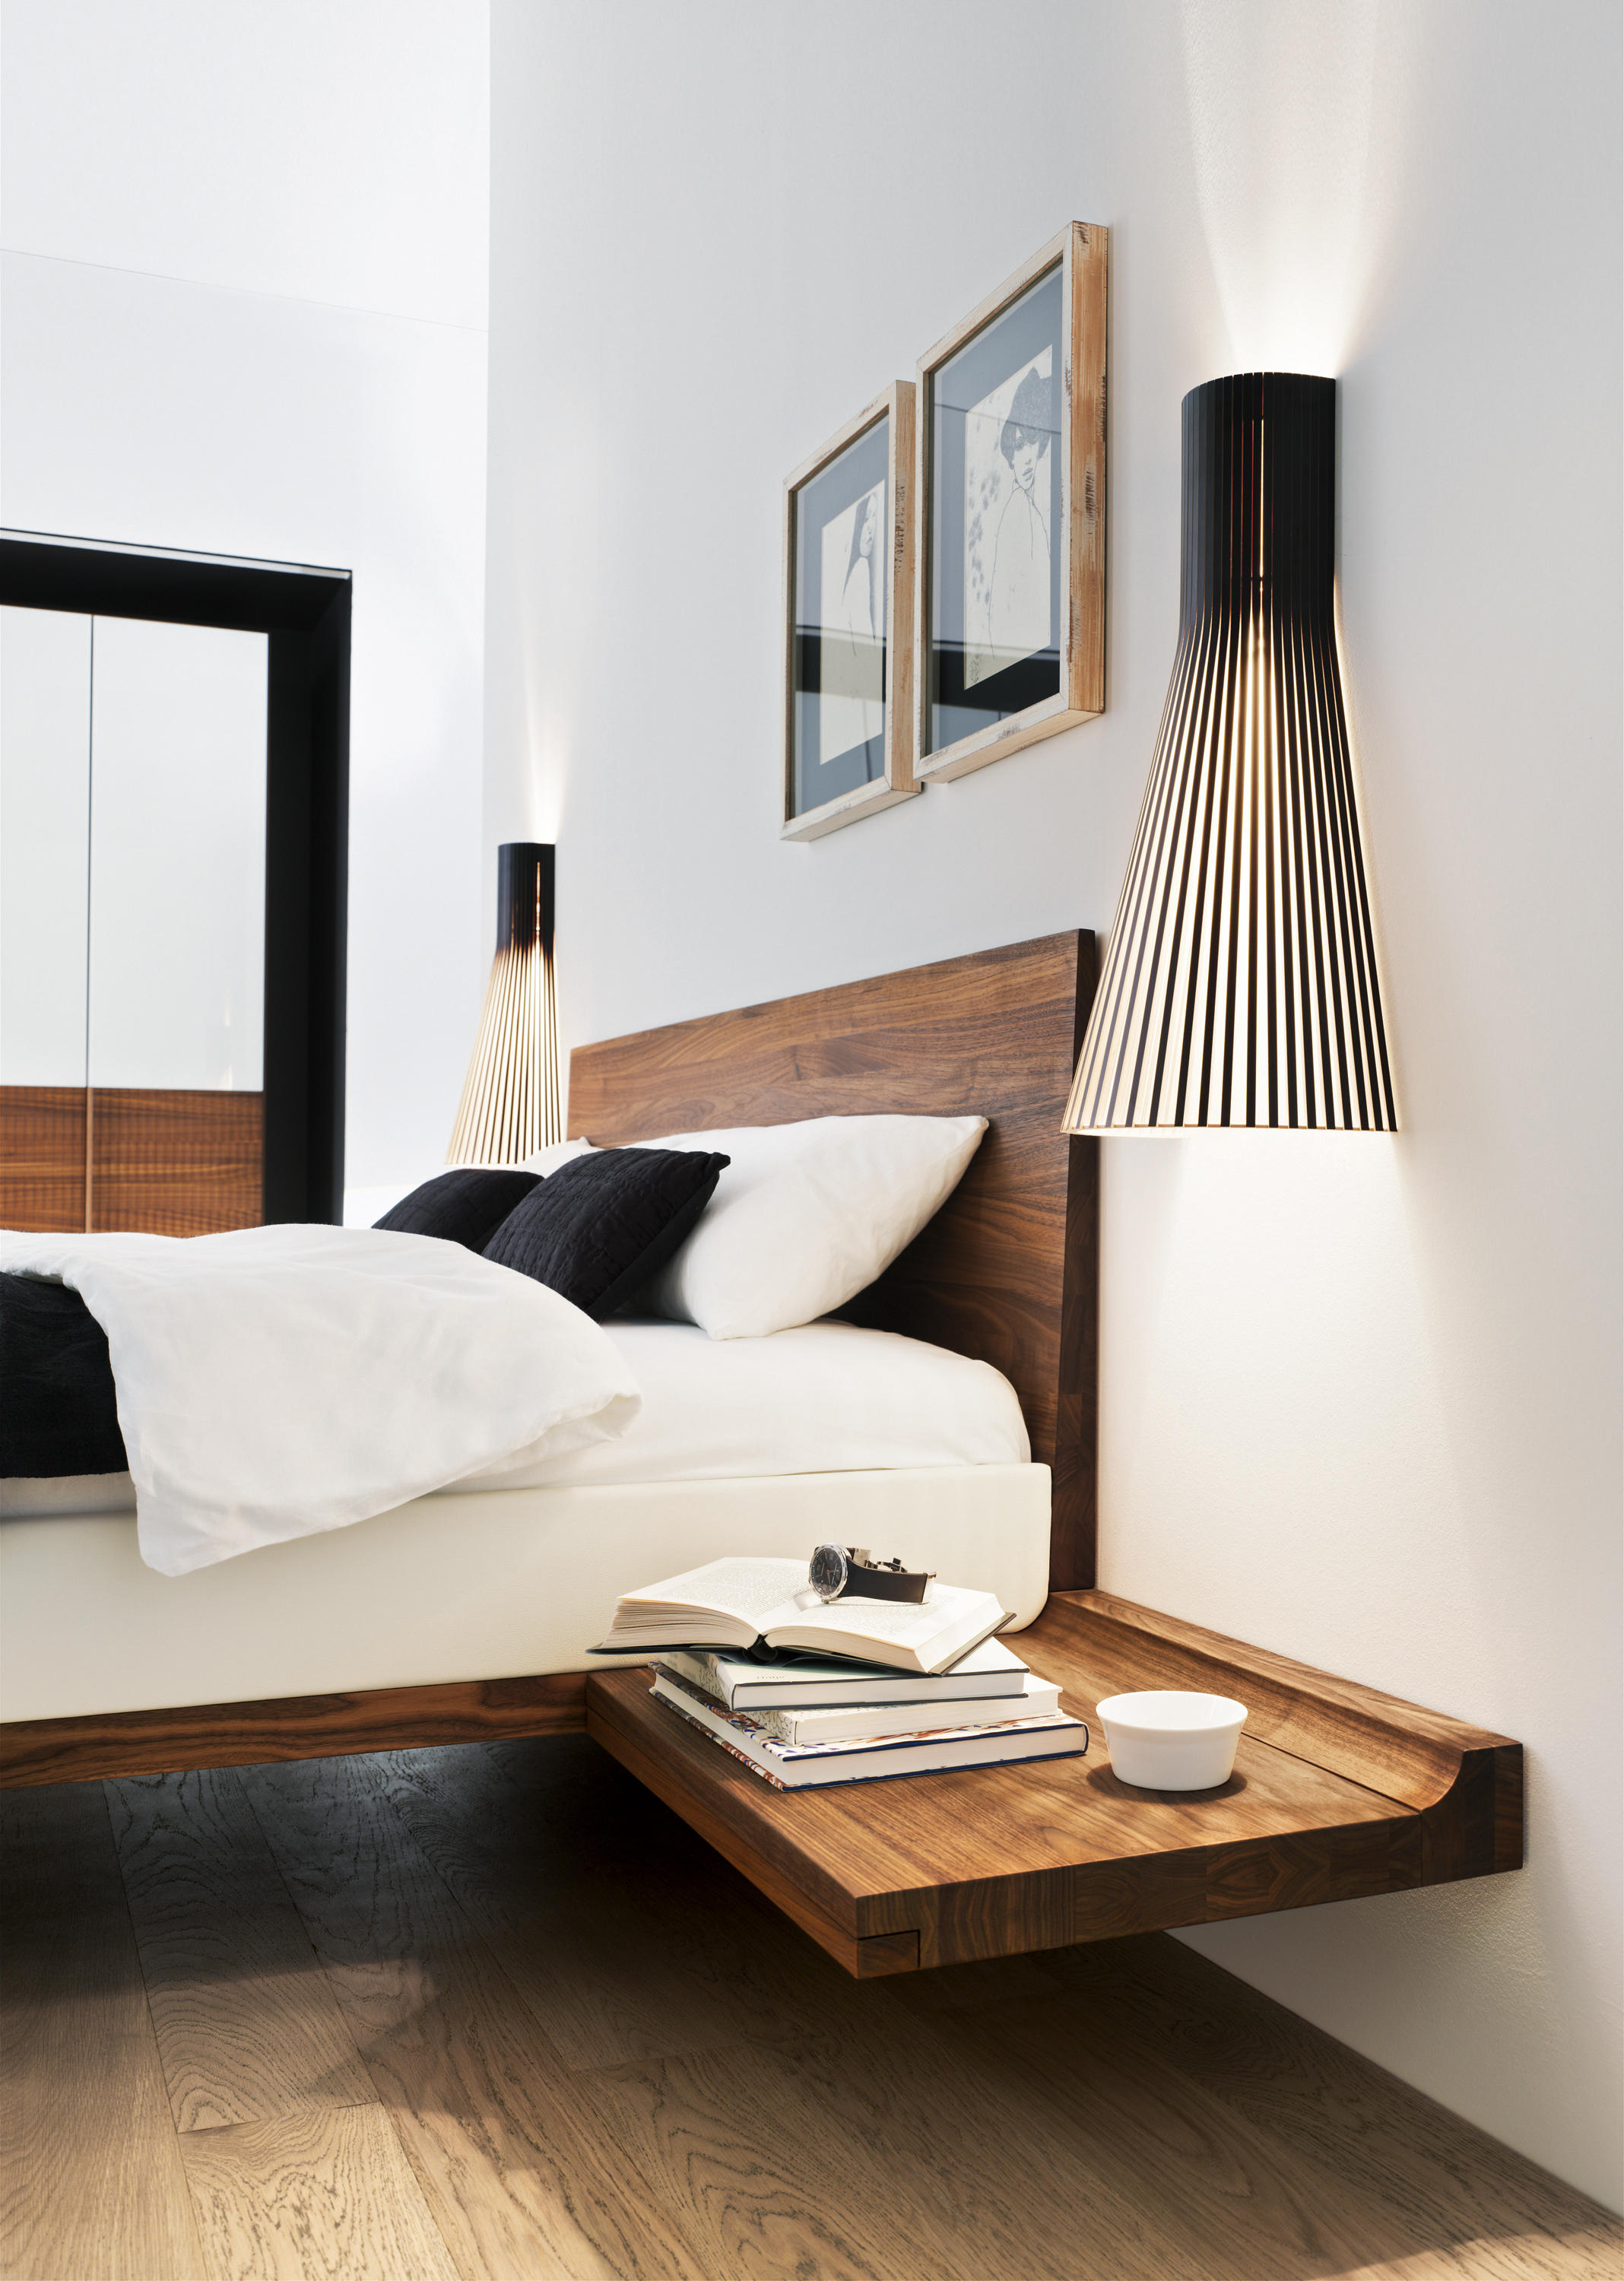 Riletto Bed Beds From Team 7 Architonic